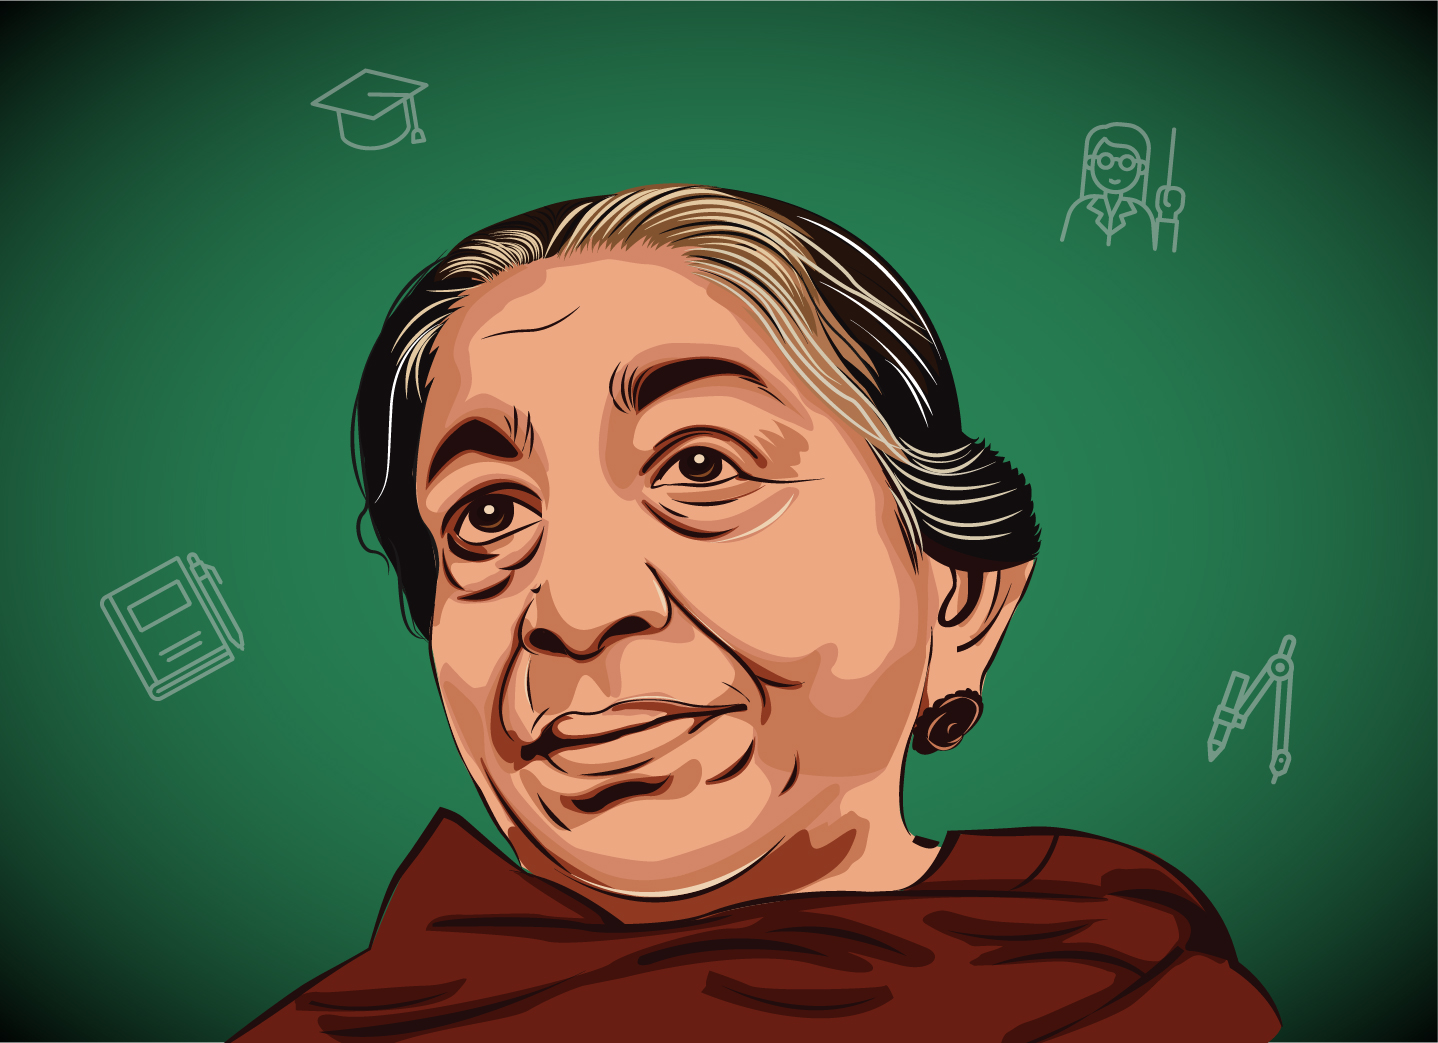 Fundraising for causes Sarojini Naidu fought for